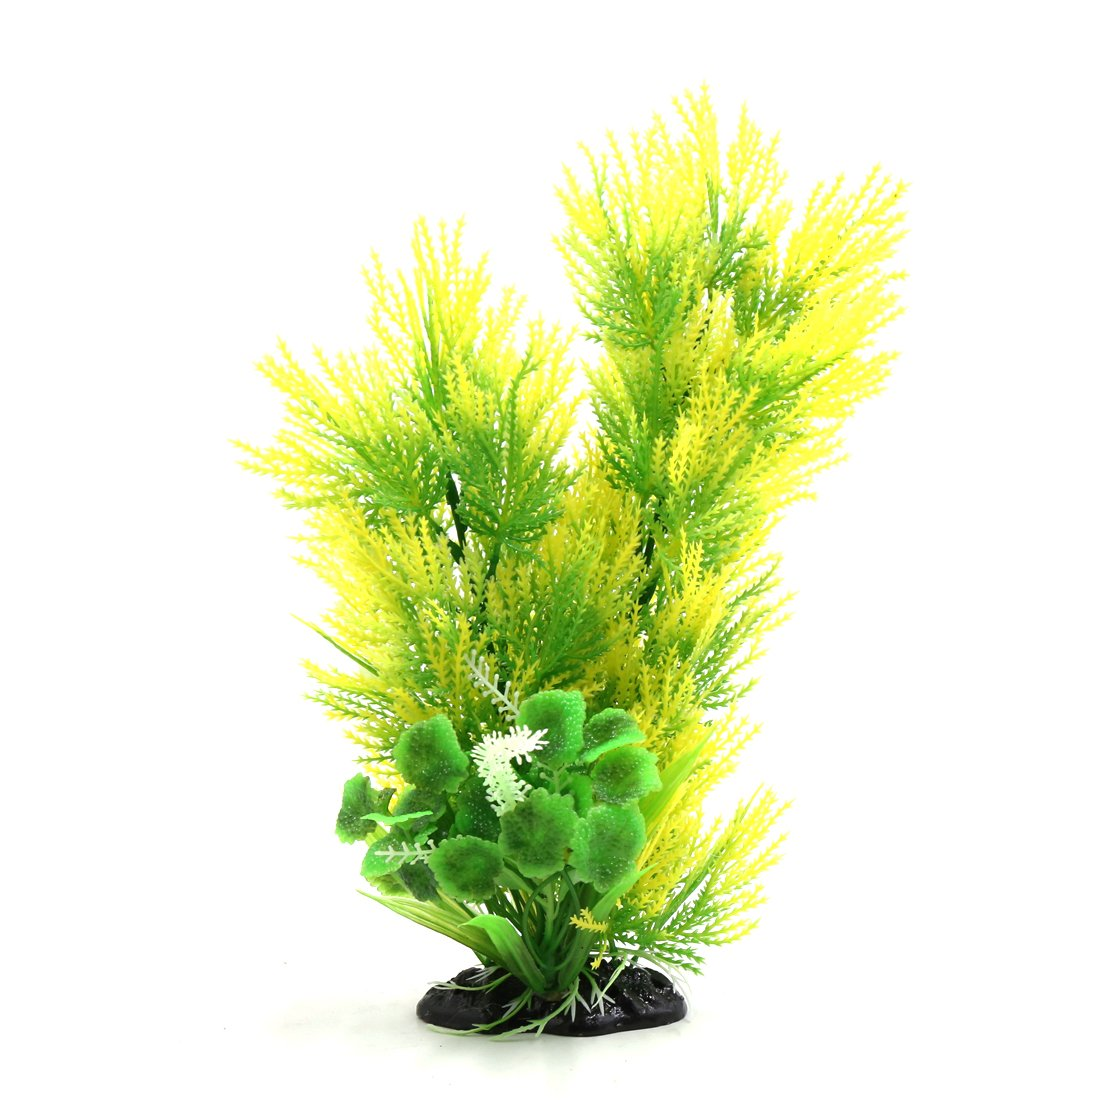 Uxcell Yellow Green Plastic Plants Decor Aquarium Terrarium Habitat Ornamentation for Reptiles and Amphibians